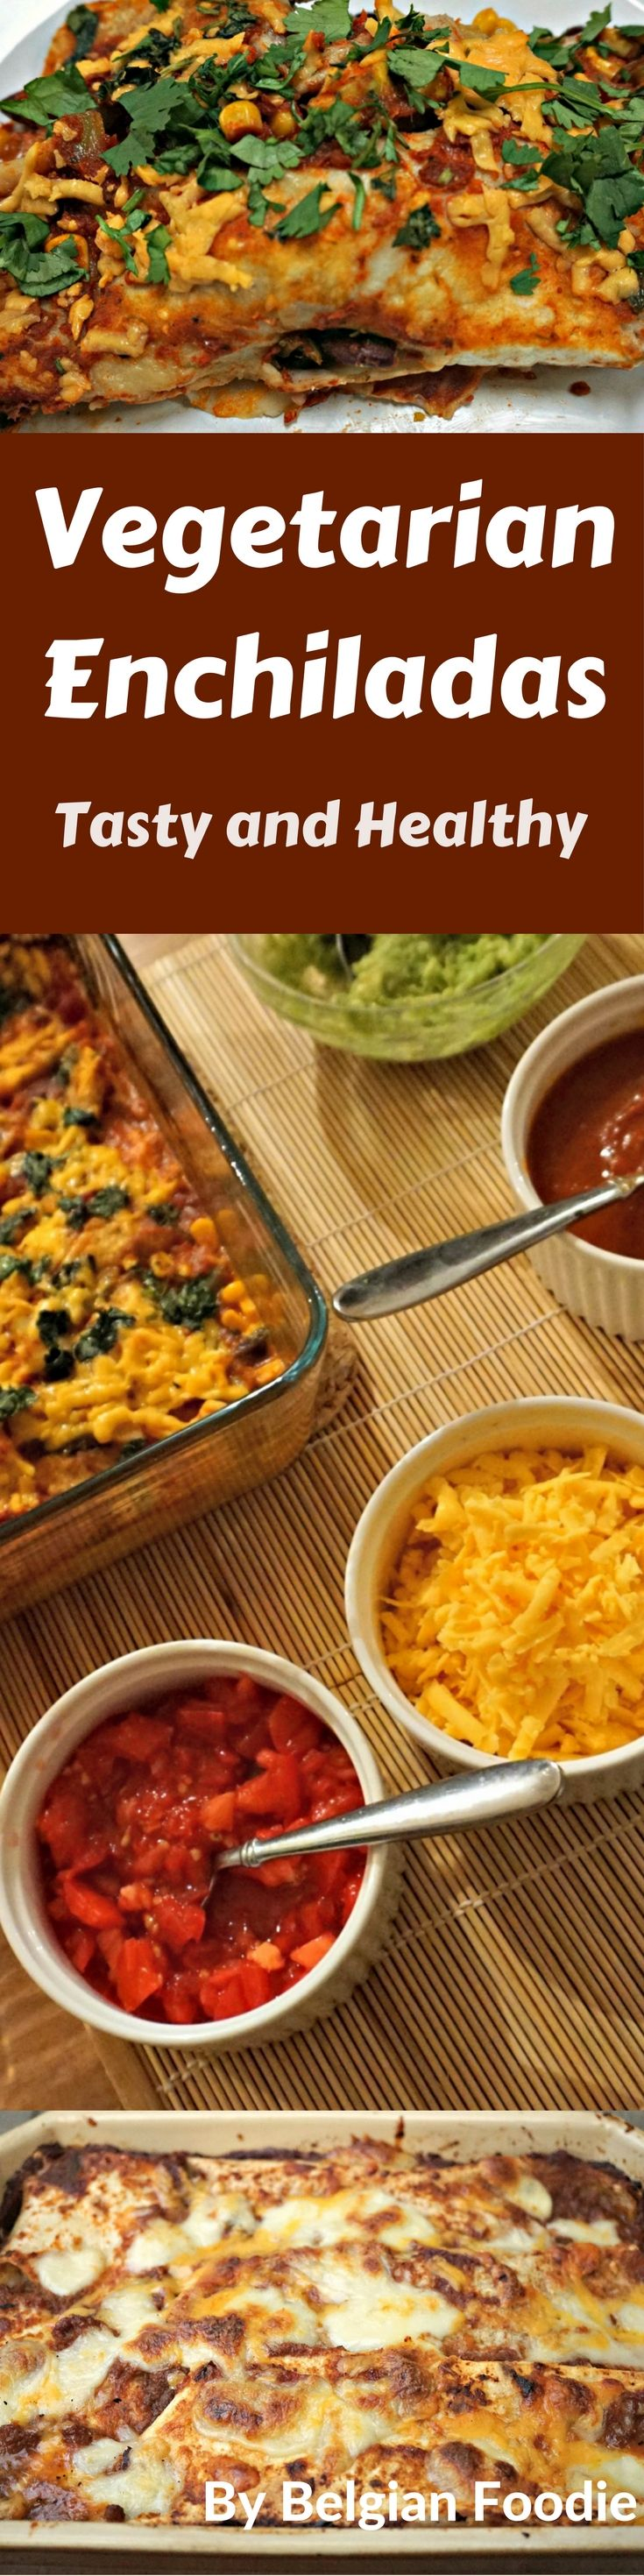 Tasty Healthy Vegetarian Enchiladas with full flavor from a homemade Red Enchilada Sauce